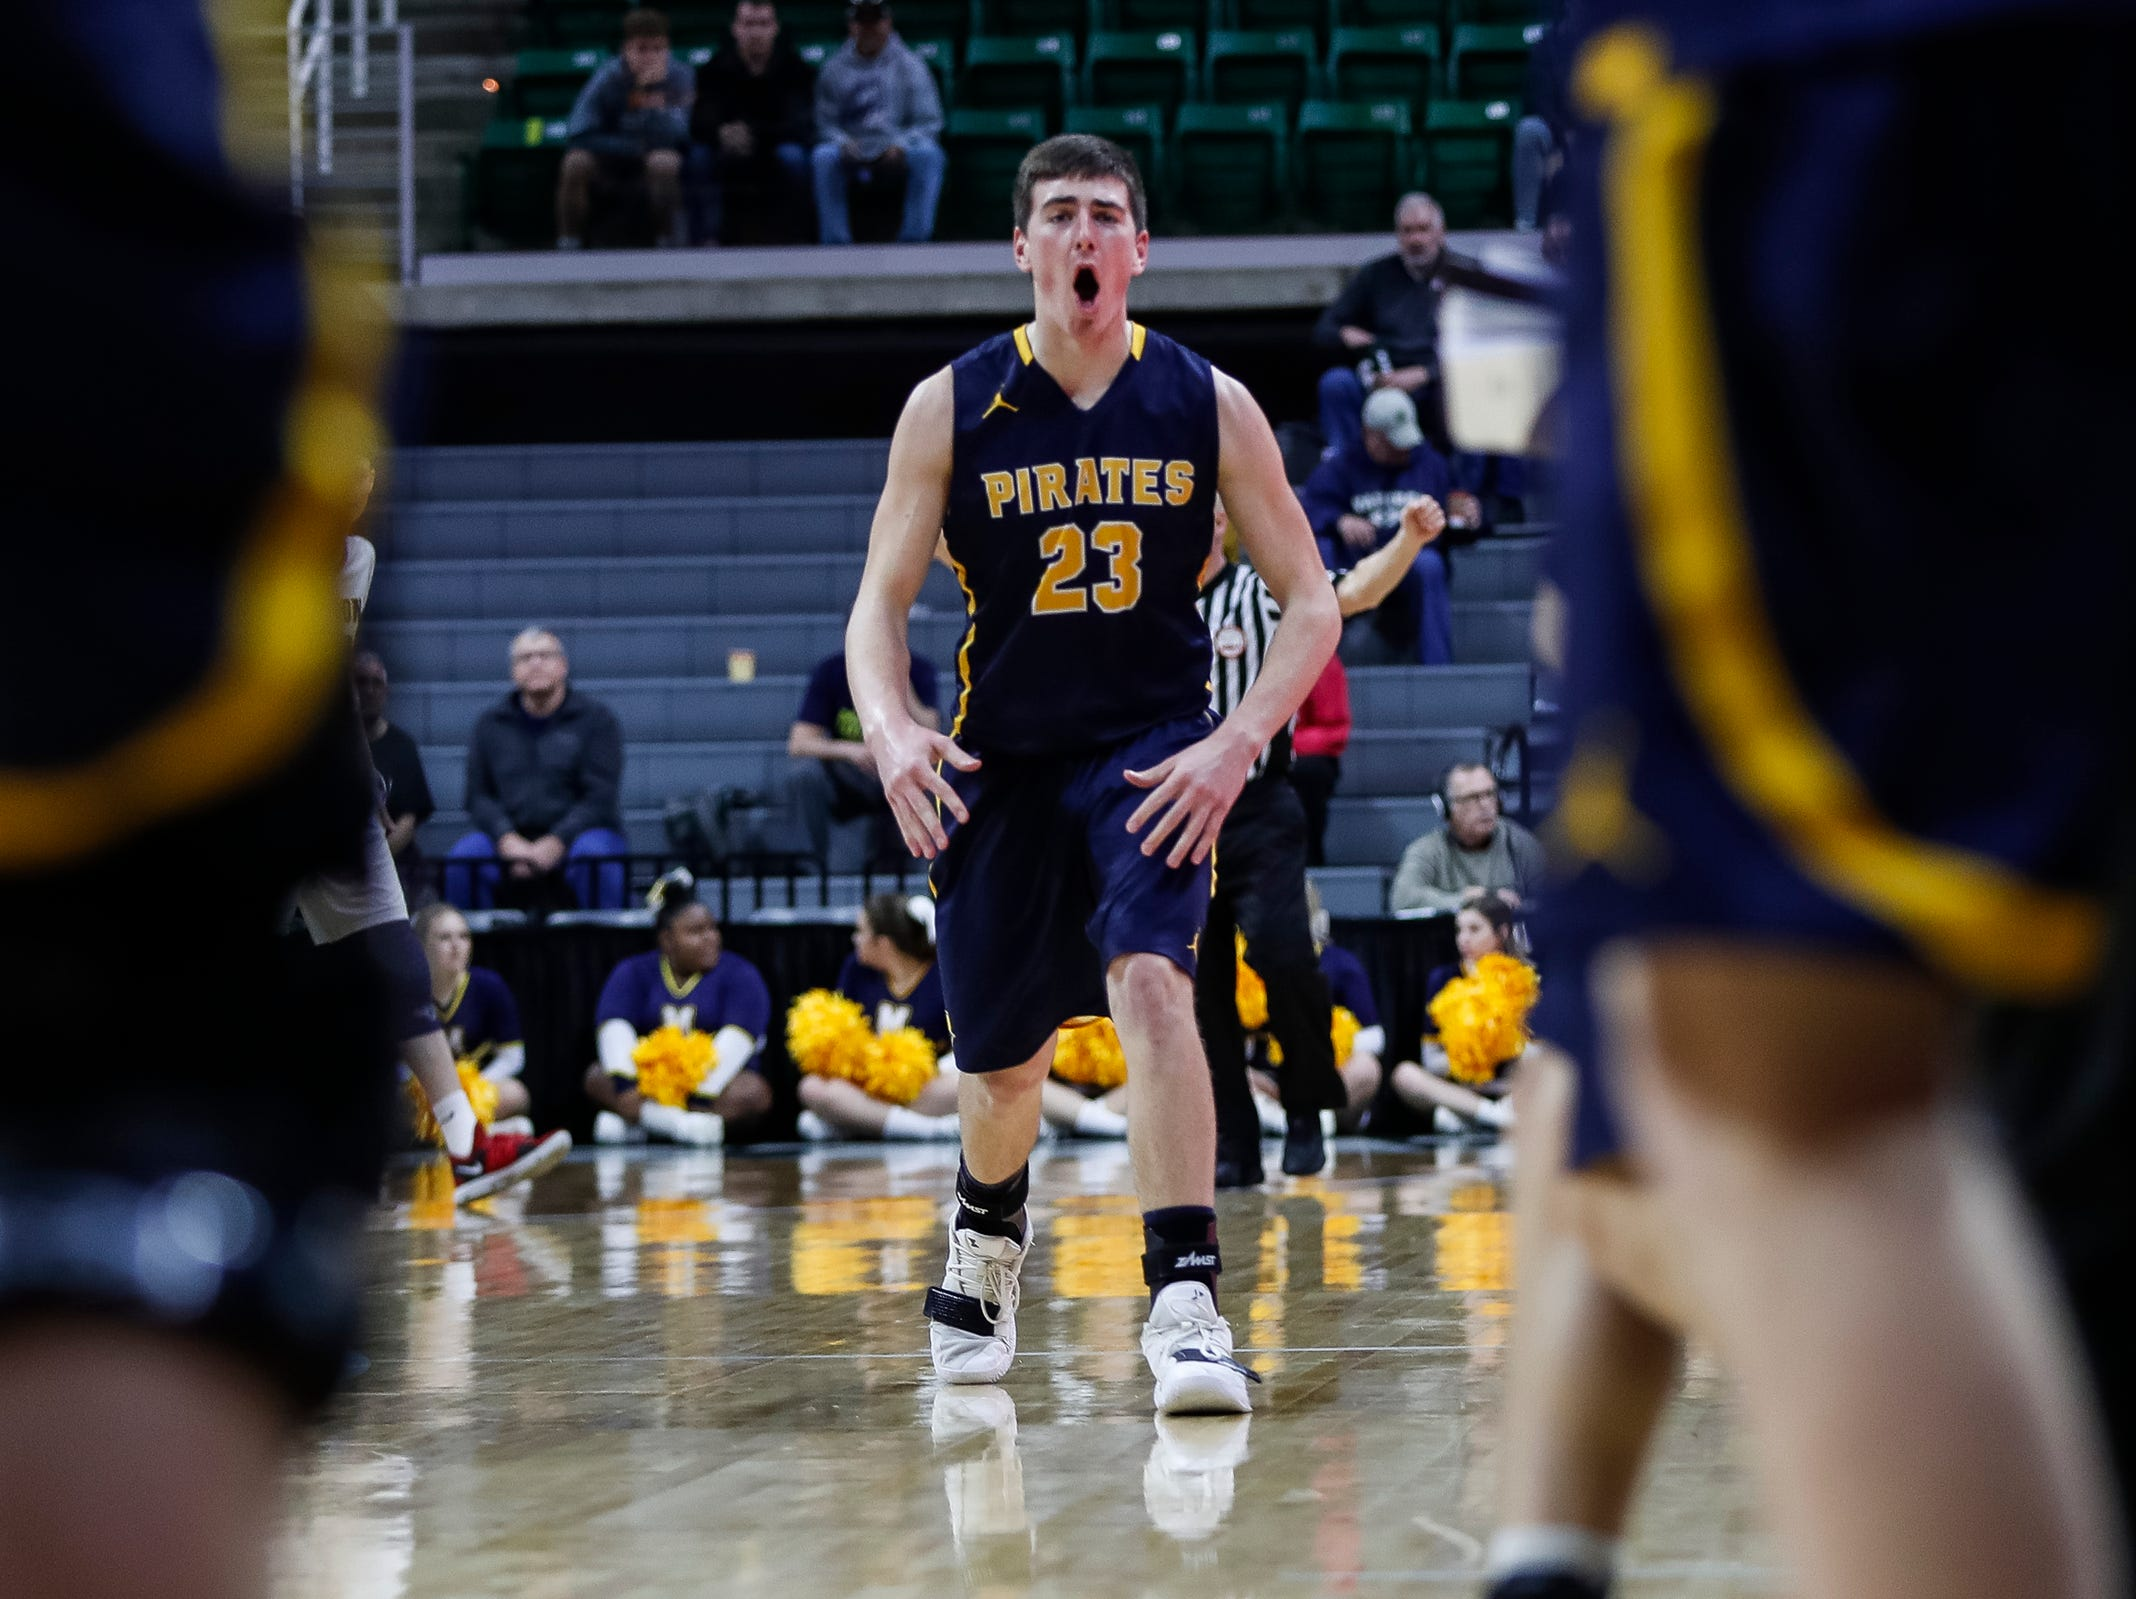 Pewamo-Westphalia's Aaron Bearss (23) celebrates after making a 3-pointer against Erie-Mason during the first half of MHSAA Division 3 semifinal at the Breslin Center in East Lansing, Thursday, March 14, 2019.